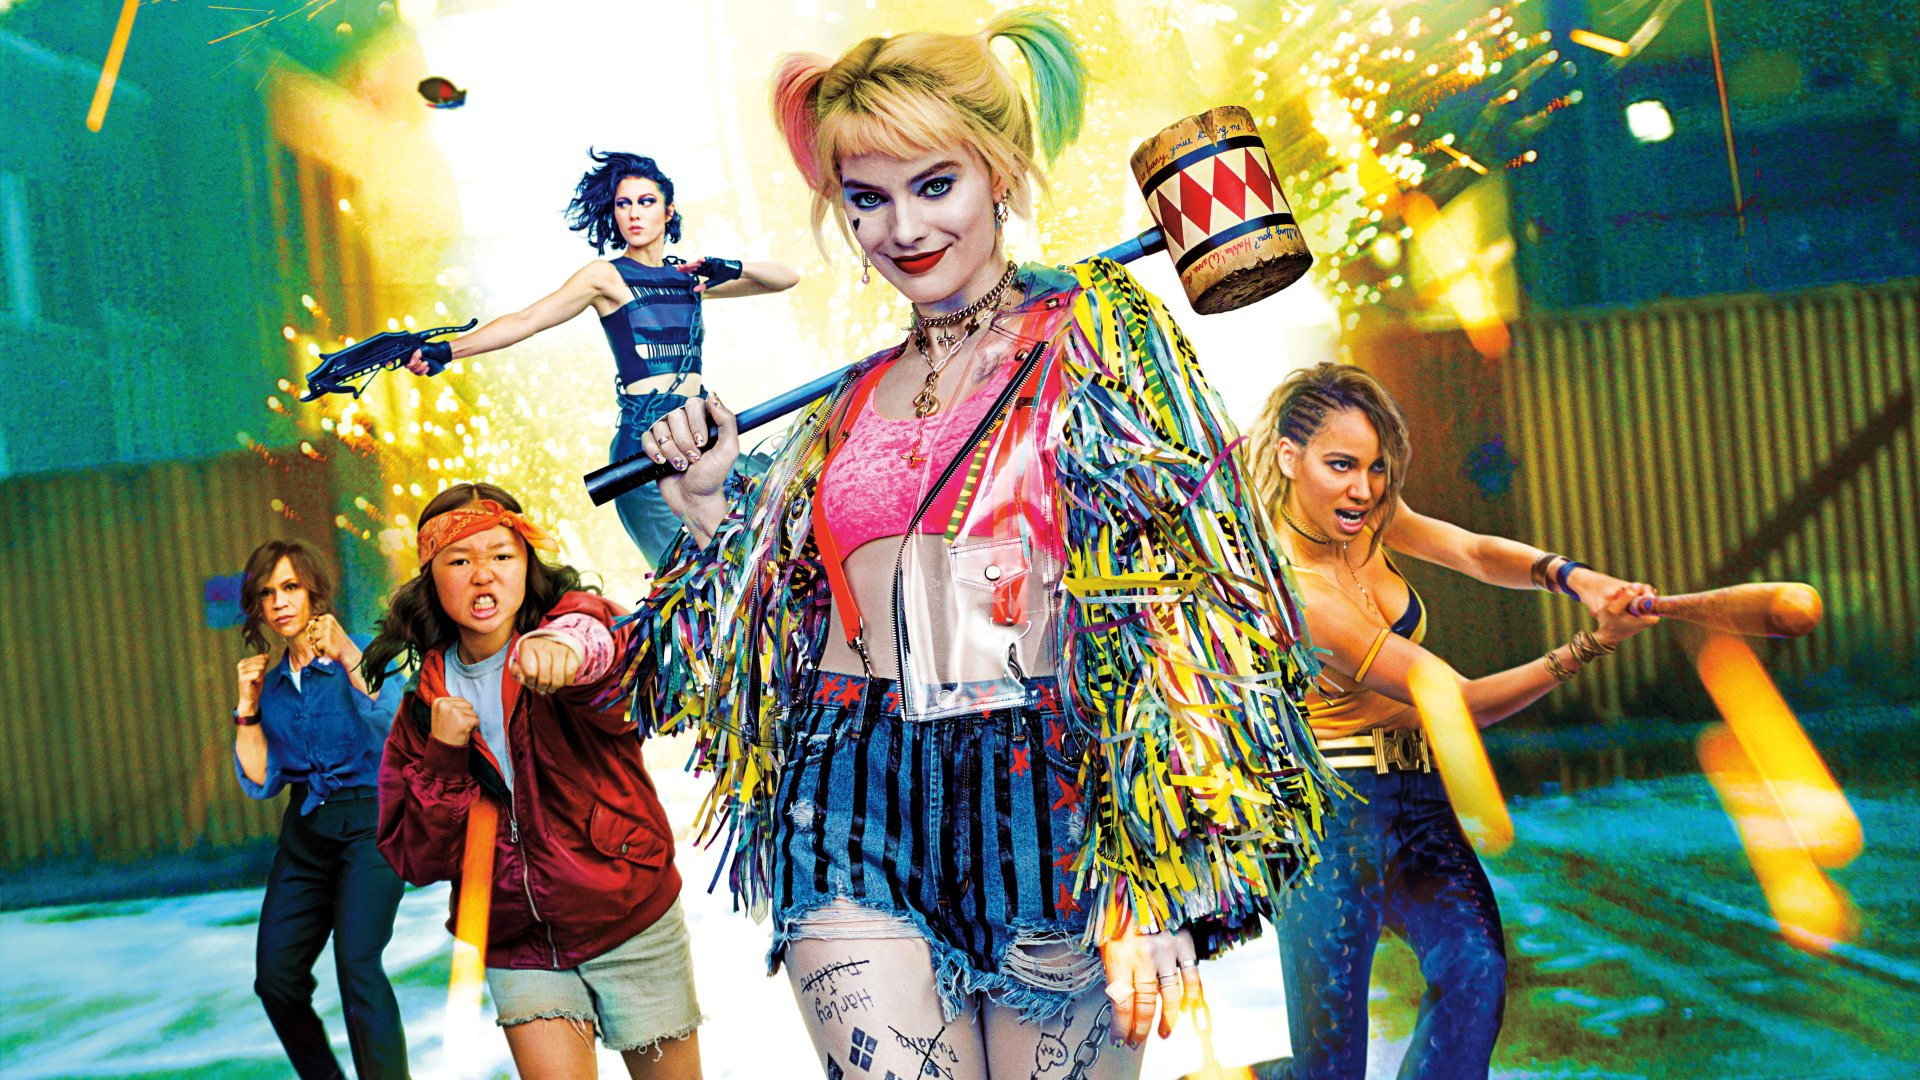 42 Birds Of Prey And The Fantabulous Emancipation Of One Harley Quinn Hd Wallpapers Background Images Wallpaper Abyss